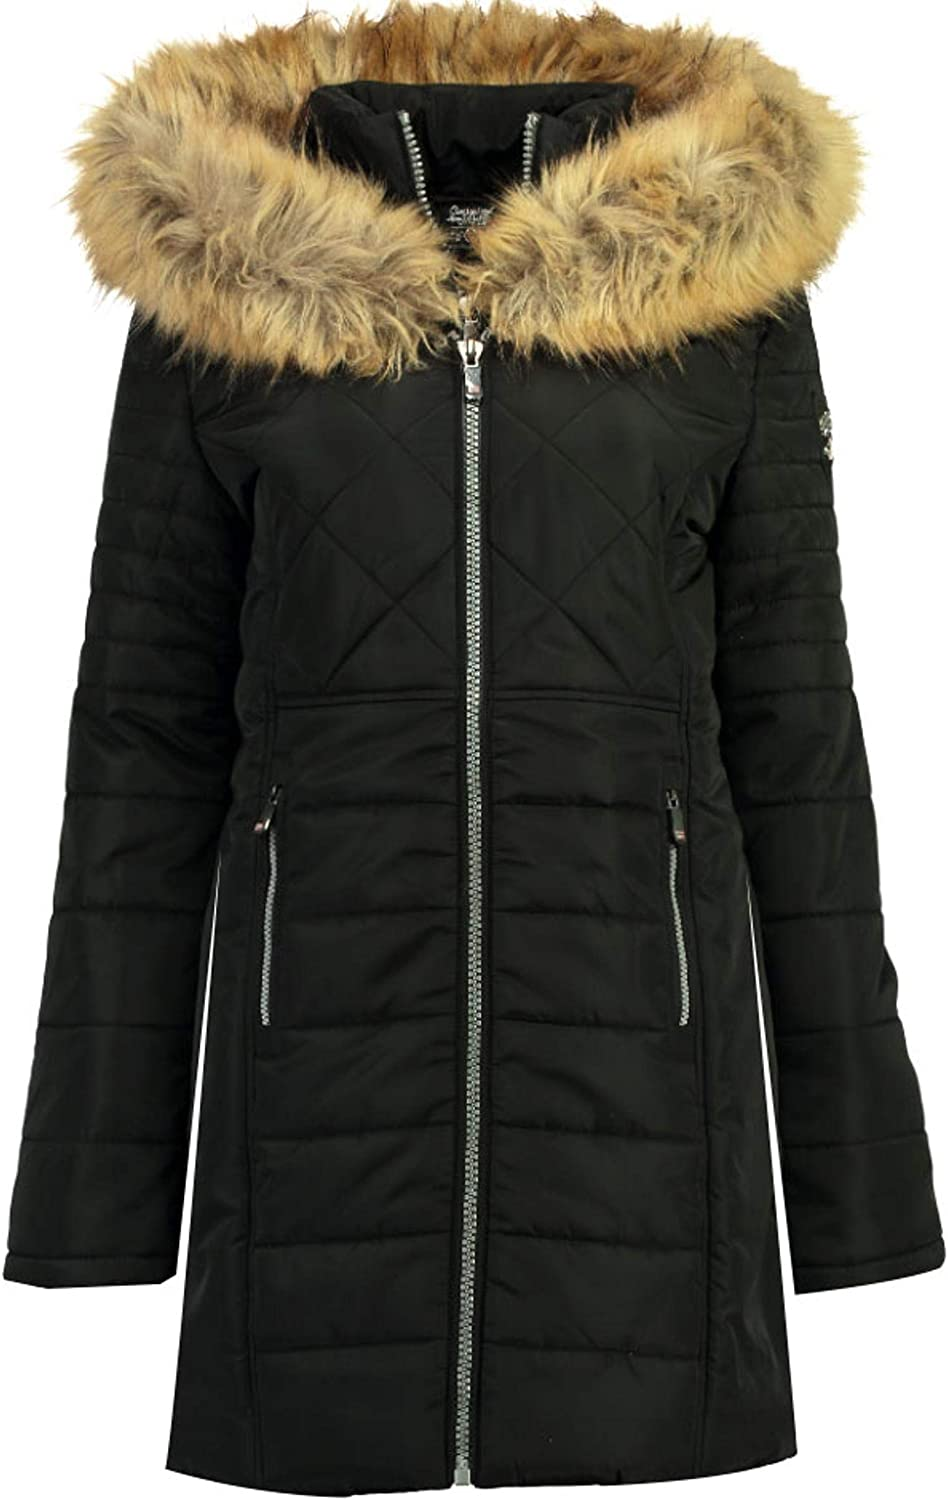 Capuche Fourrure Double Fermeture Geographical Norway Cerise Parka Doudoune Femme